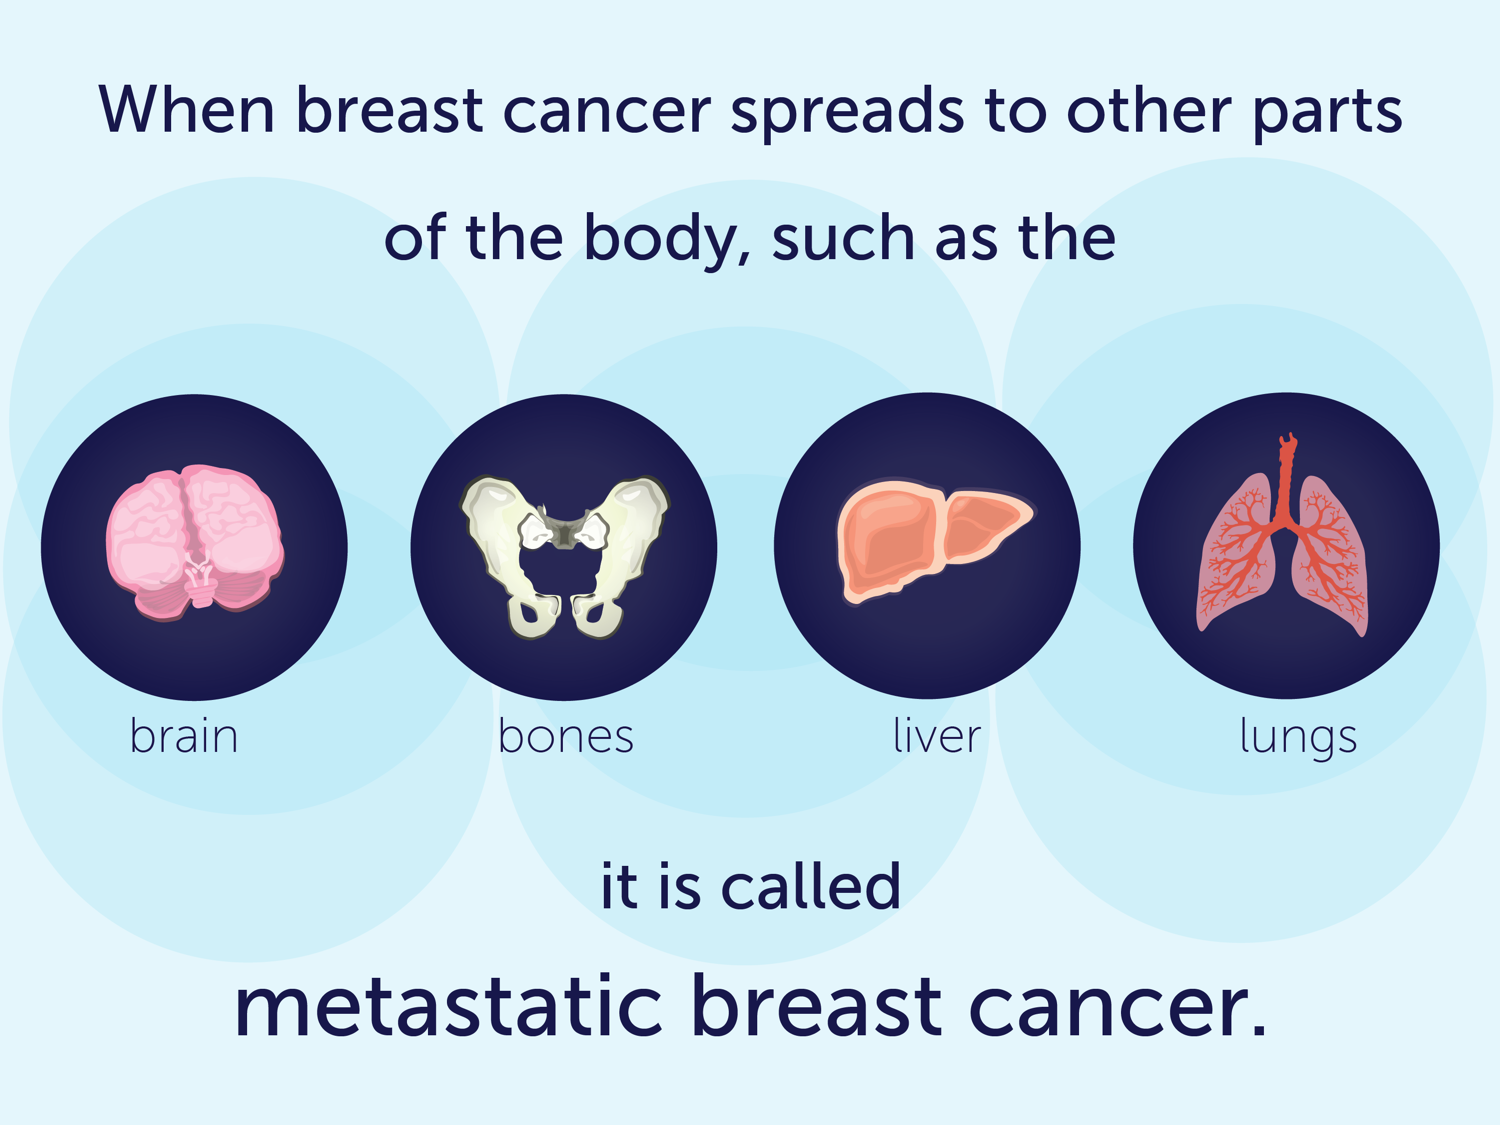 When breast cancer spreads to other parts of the body, such as the brain, bones, liver, or lungs, it is called metastatic breast cancer.